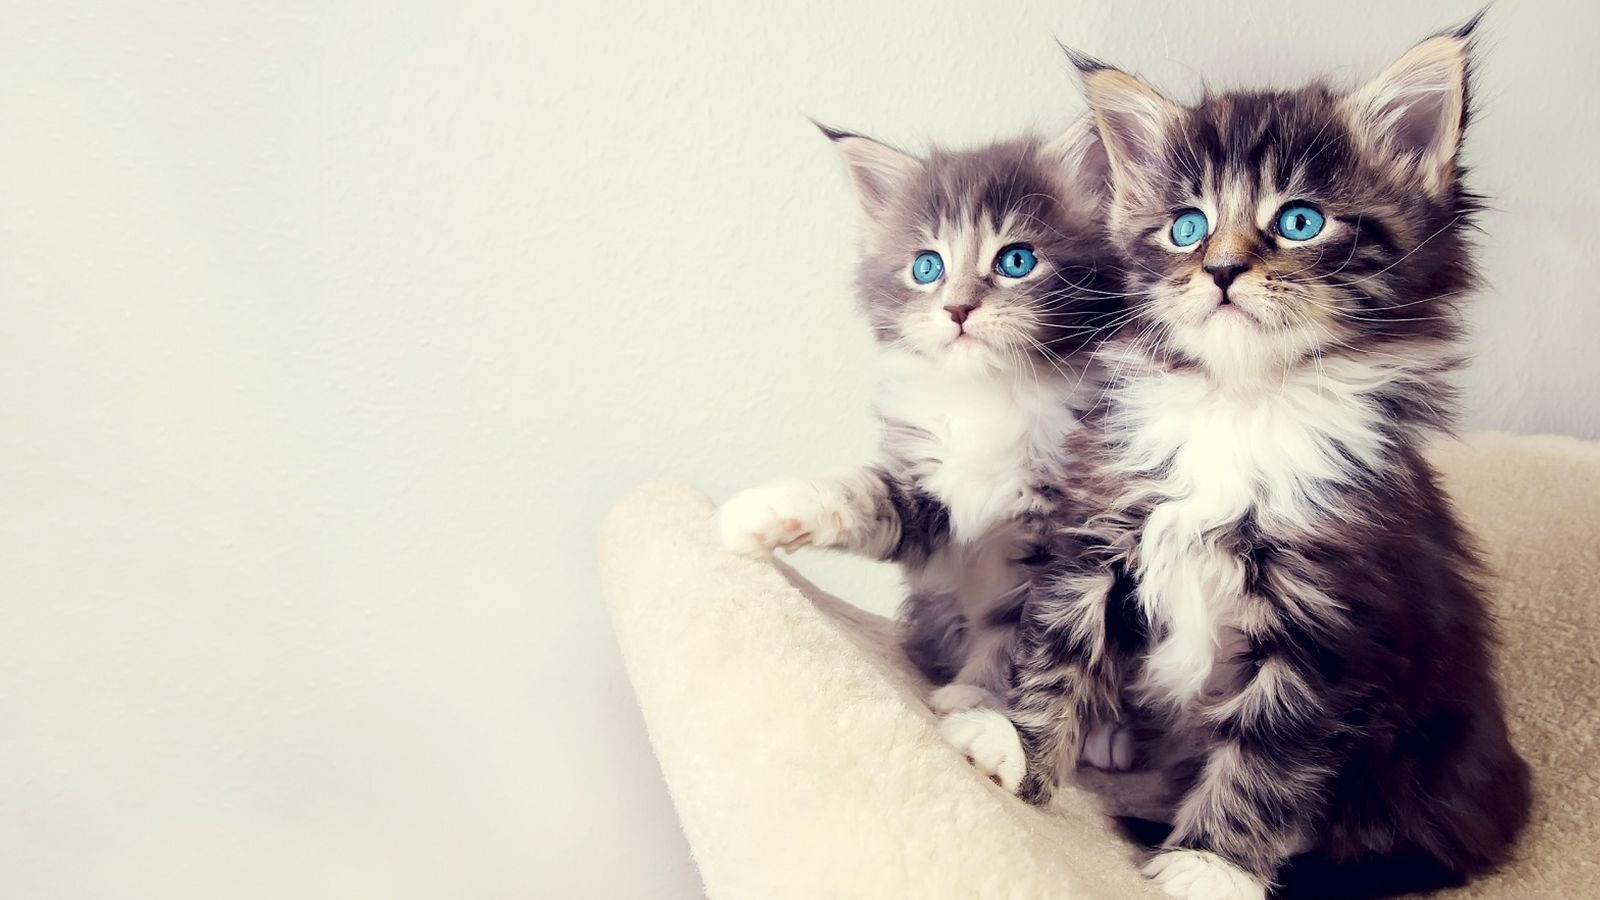 cute_kittens-wallpaper-1600x900.jpg